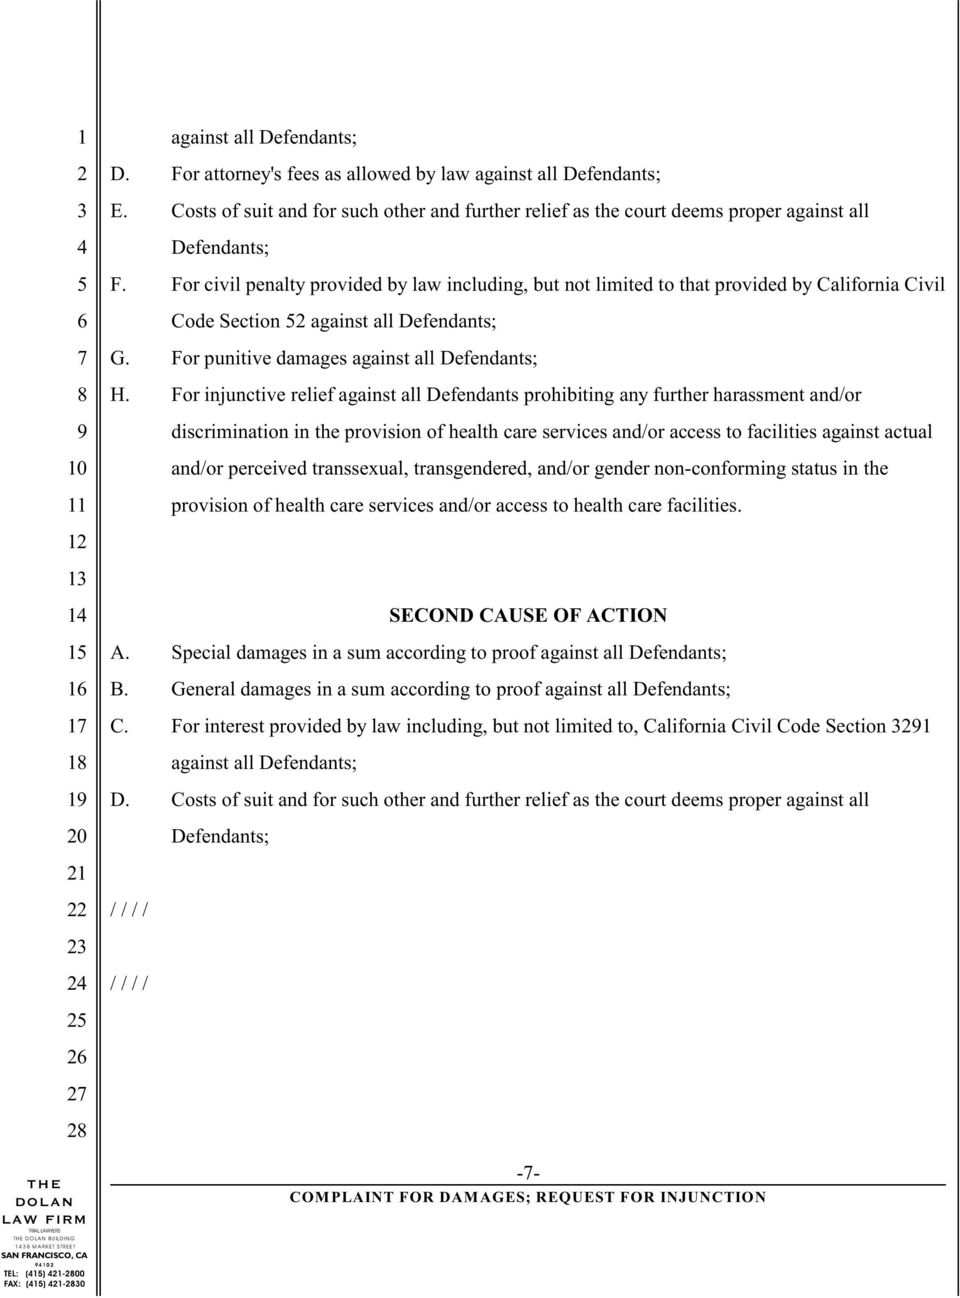 For injunctive relief against all Defendants prohibiting any further harassment and/or discrimination in the provision of health care services and/or access to facilities against actual and/or